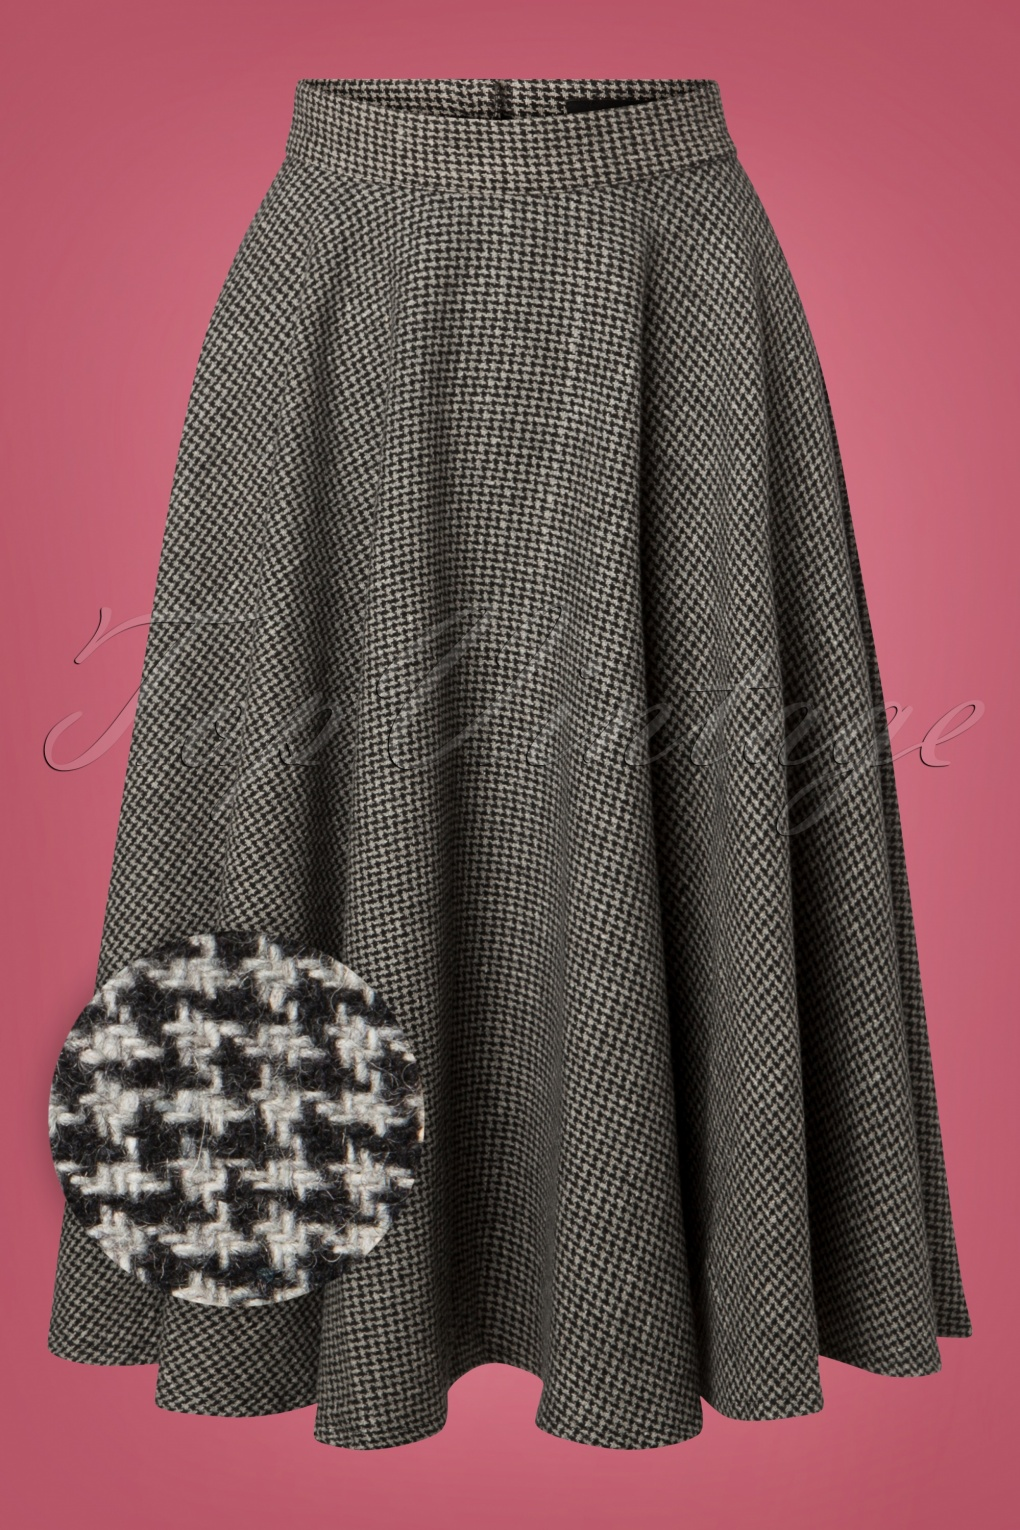 1940s Style Skirts- Vintage High Waisted Skirts 40s Sophie Houndstooth Skirt in Grey £64.08 AT vintagedancer.com